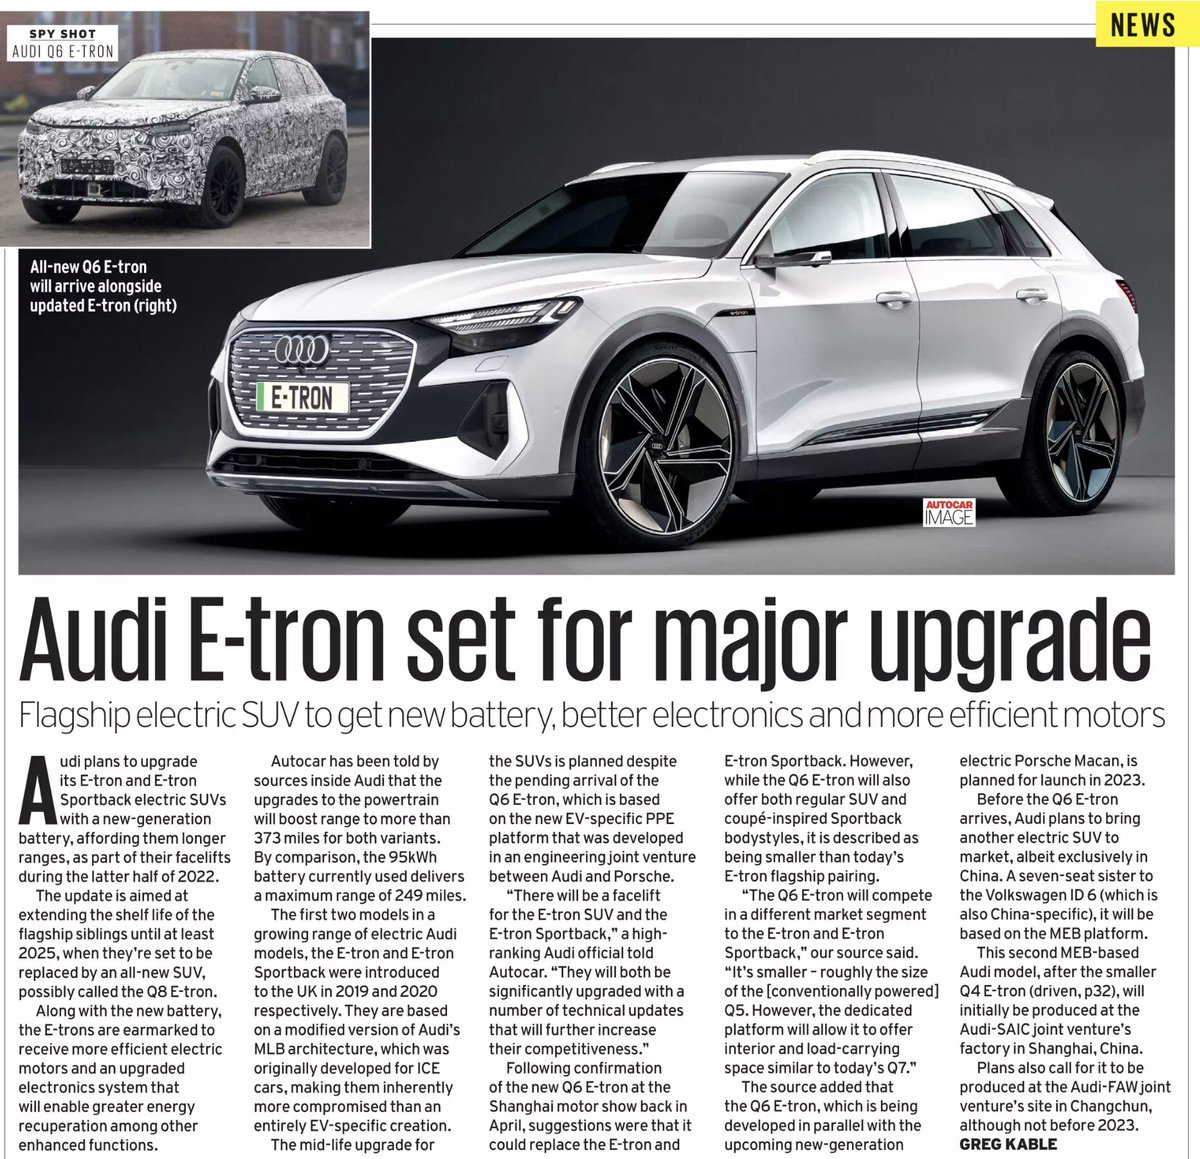 Audi's e-tron looks likely to be overshadowed by the new Audi Q4 e-tron that is has better range, is much lighter, more efficient, less expensive & nearly as spacious Now it seems this behemoth is scheduled for a range upgrade next yr to keep it relevant